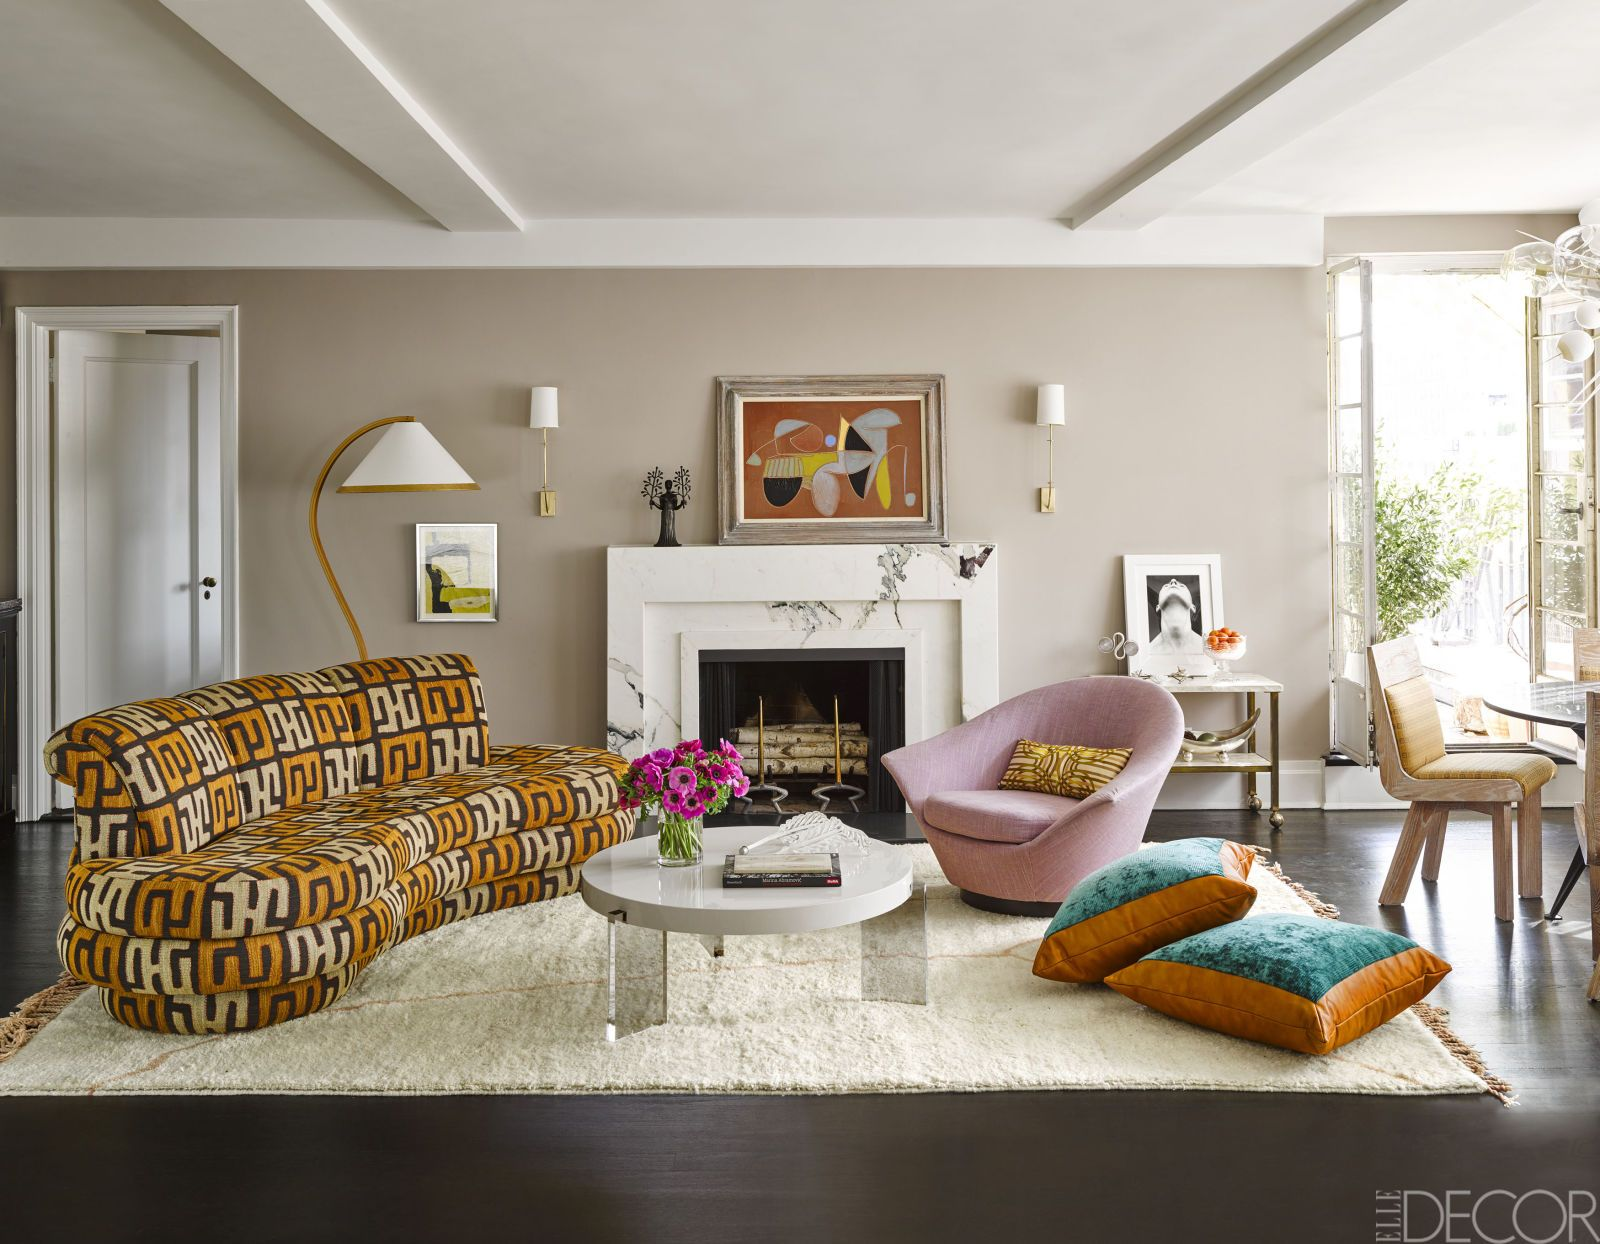 House Tour: At Home With Marisa Tomei | ELLE decor | Pinterest ...